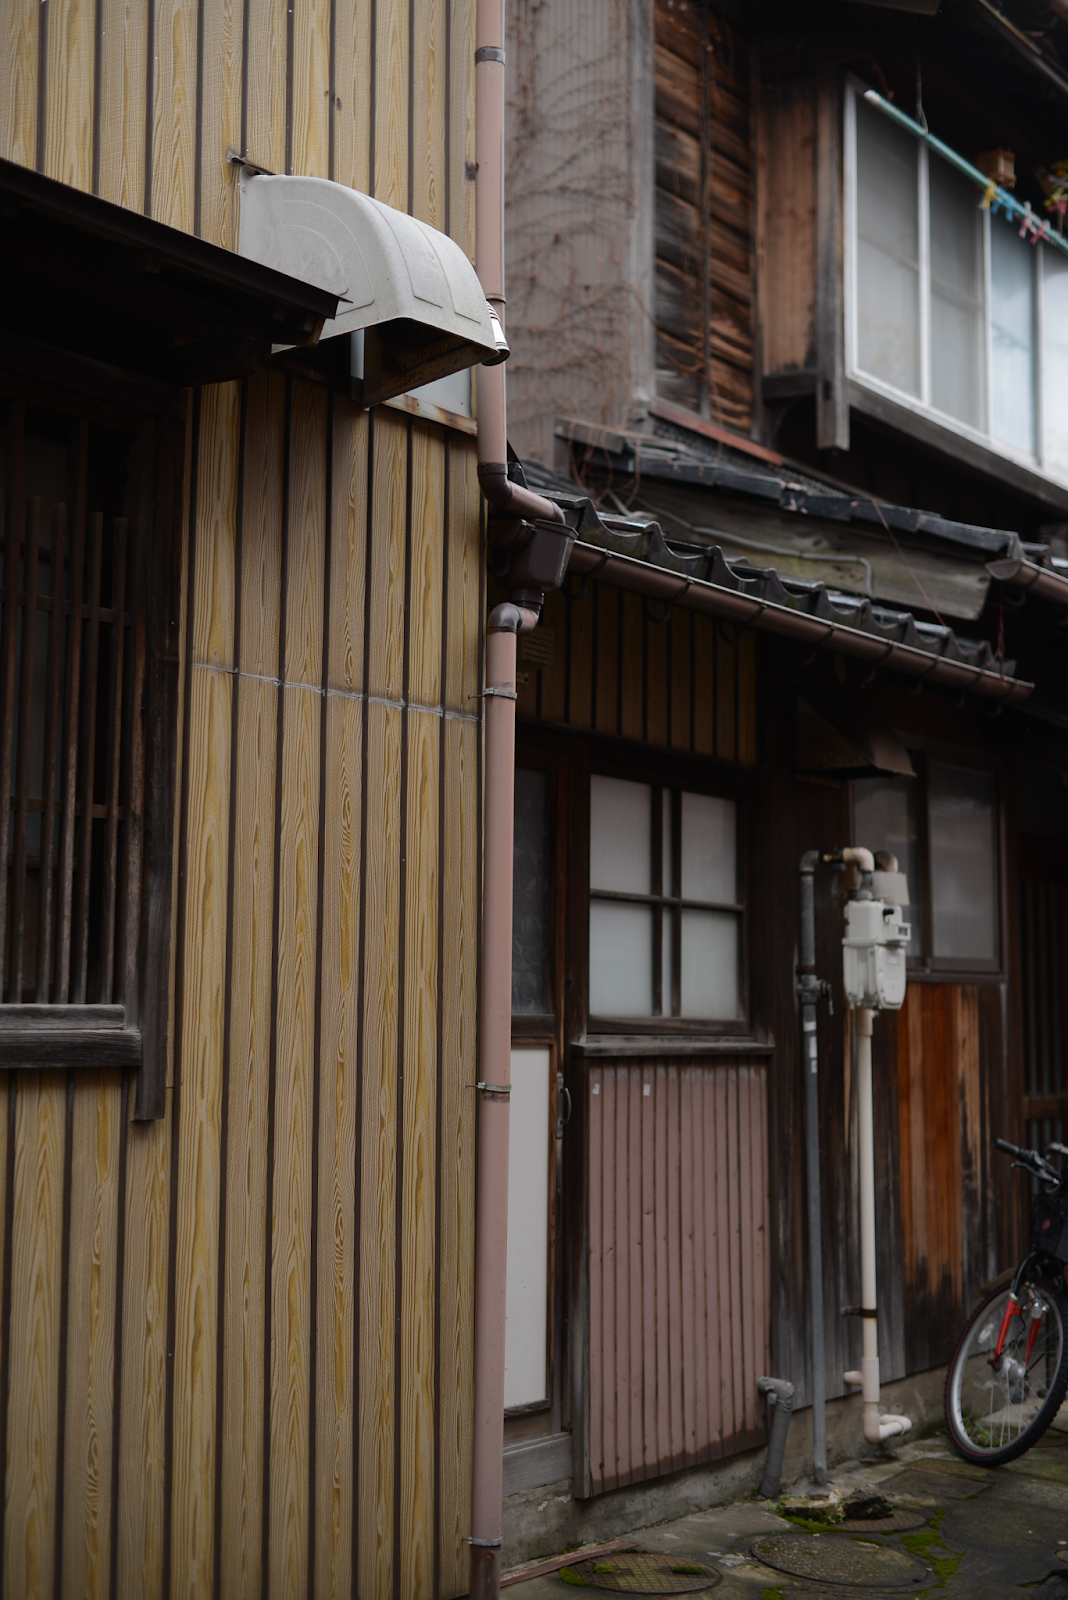 Kanazawa trip from Tokyo, must-visit cities in Japan, Higashi Chaya District, photogenic and charming towns in Japan - FOREVERVANNY